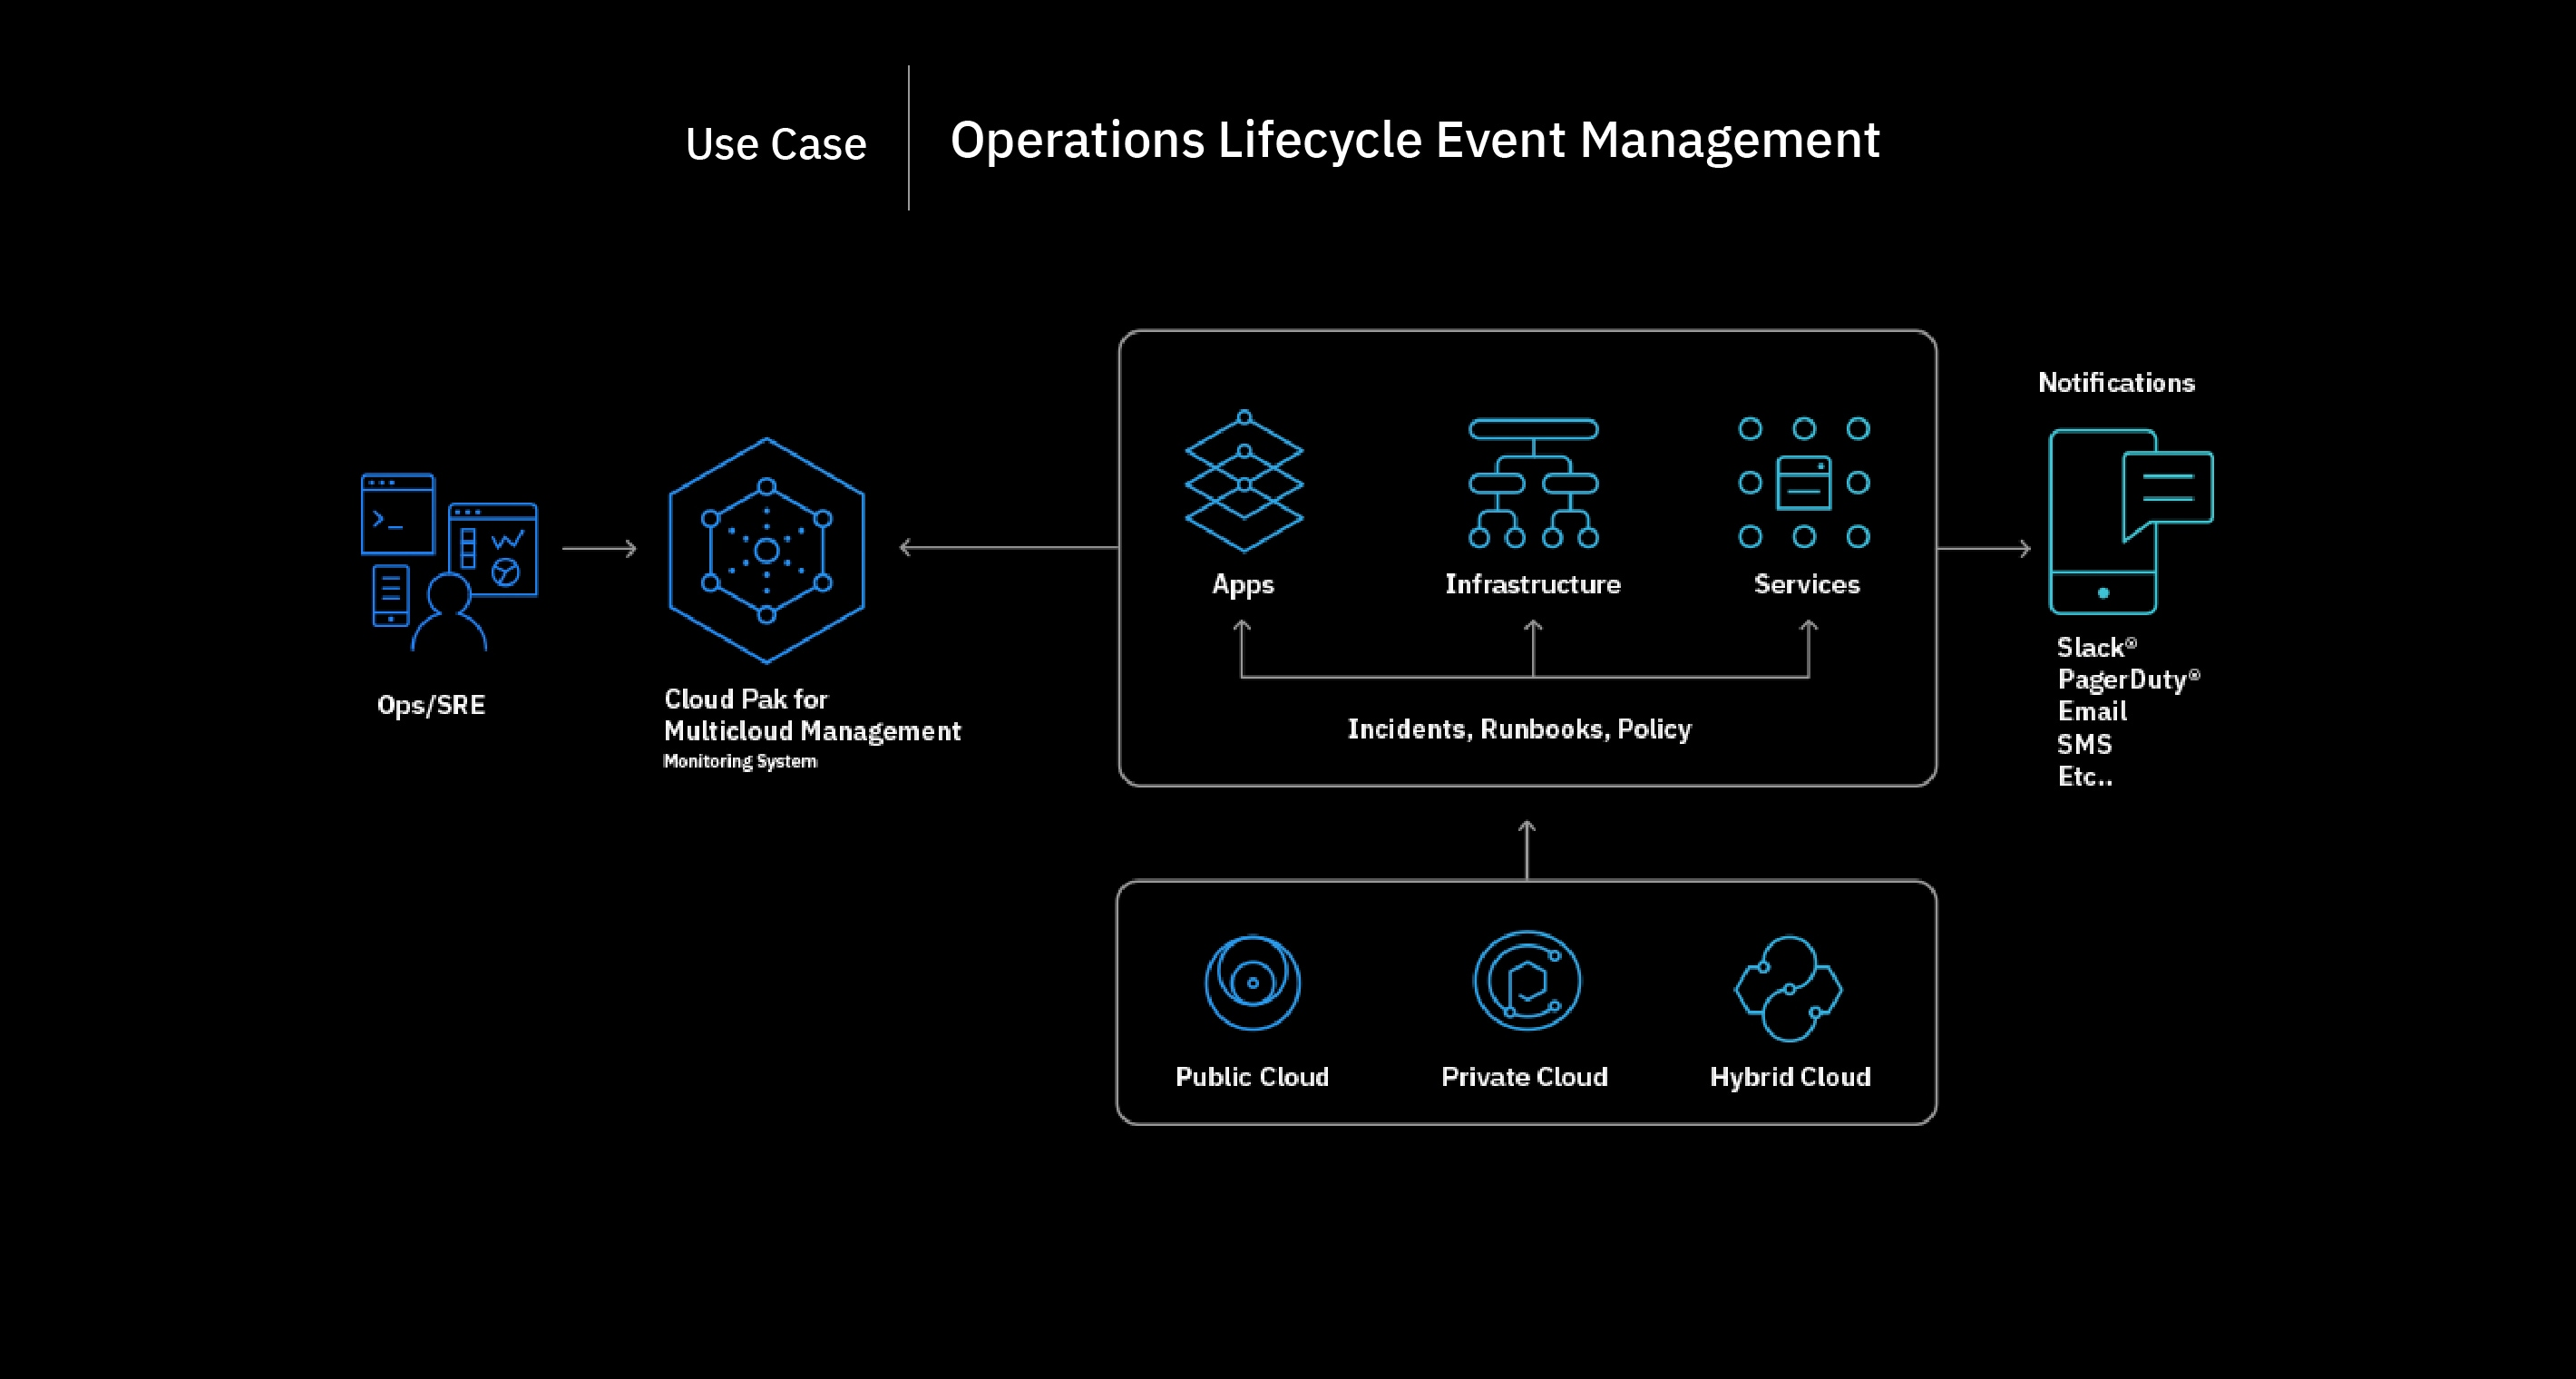 Flowchart showing the operations lifecycle event management process